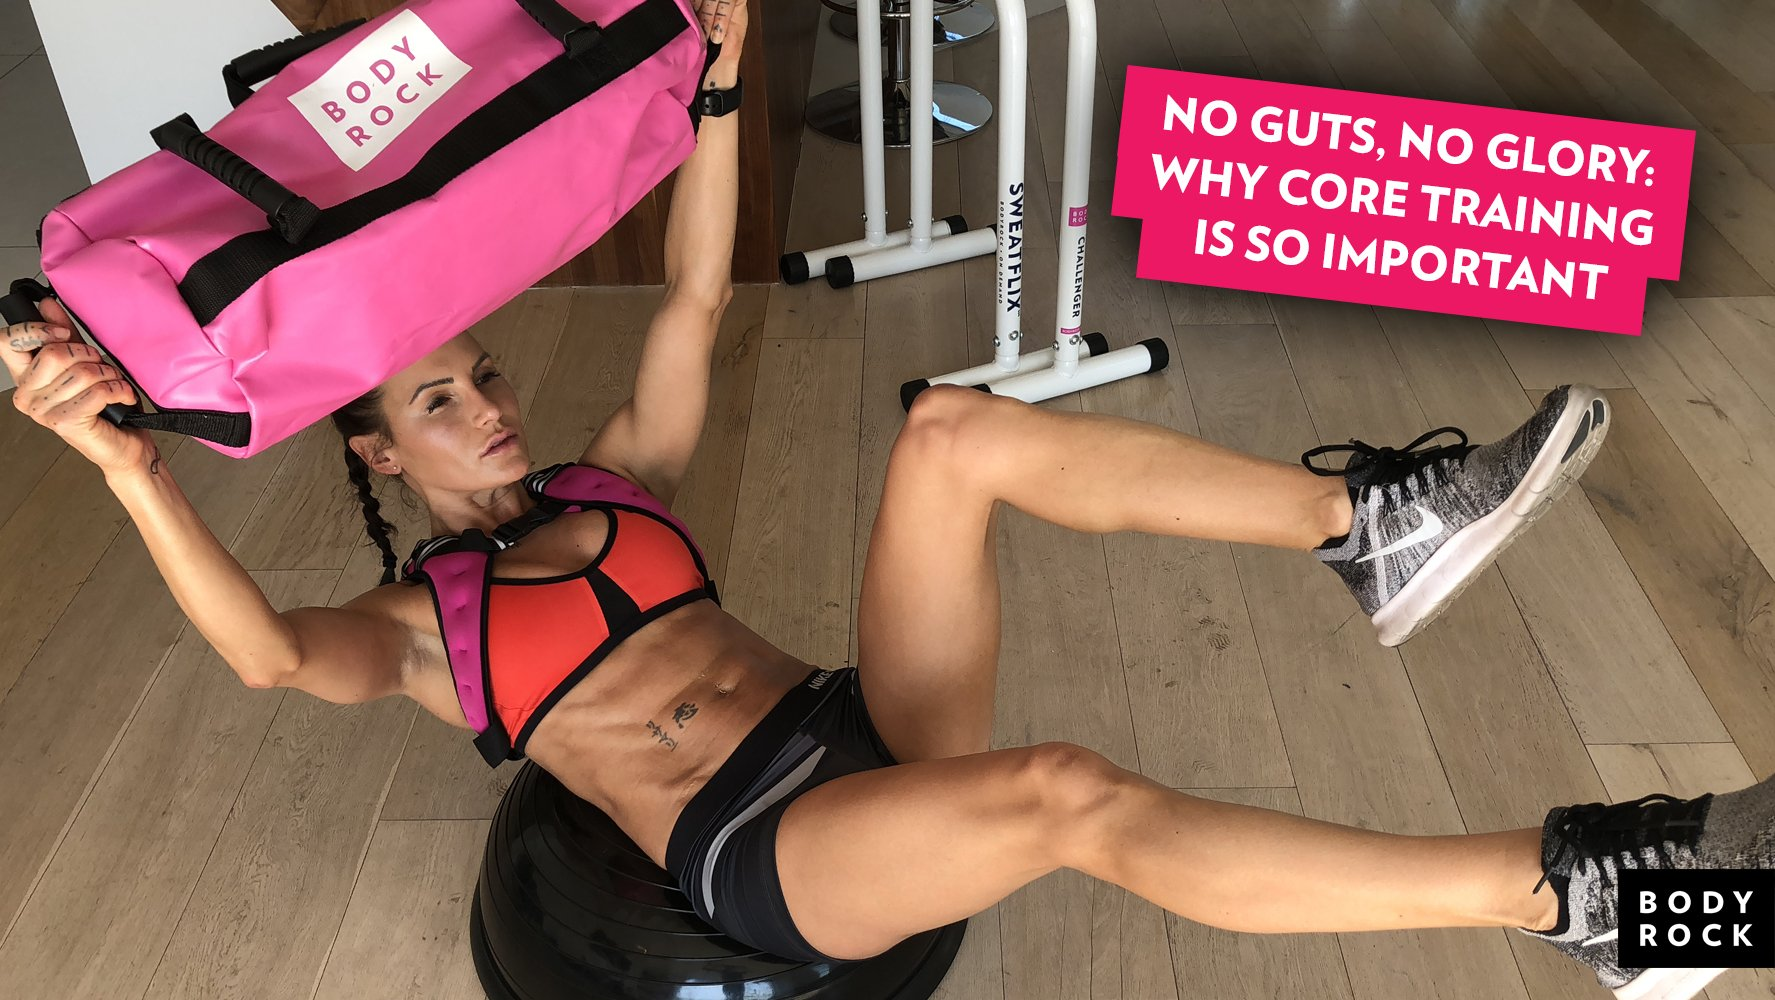 No Guts, No Glory: Why Core Training is So Important